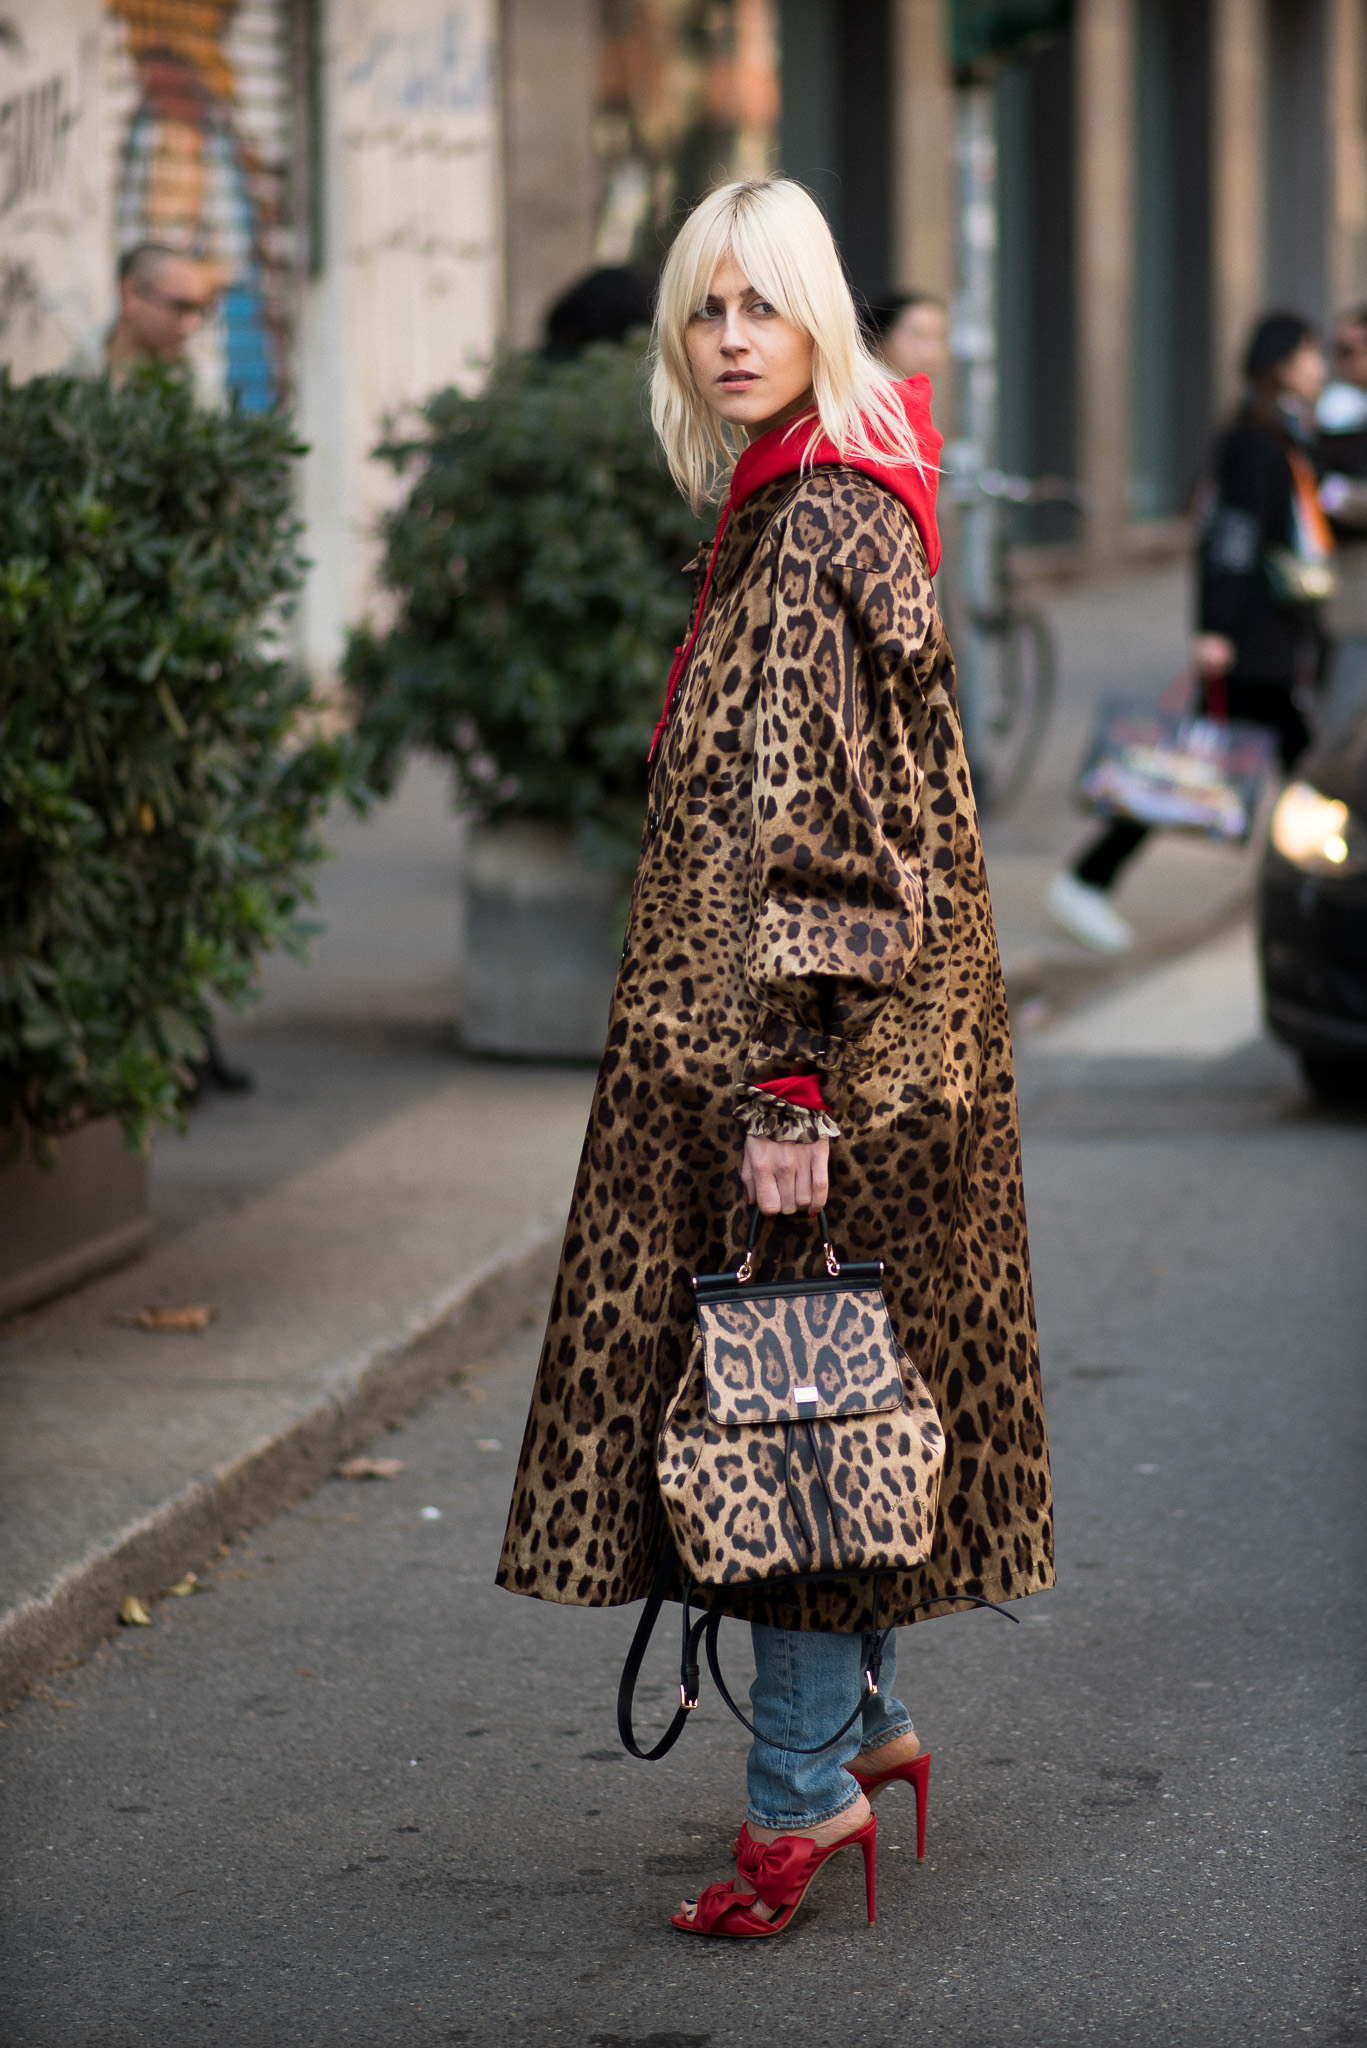 Linda Tol_Street Style_Dolce & Gabbana_Milan Fashion Week_February 26th 2017_Photography Annika Lagerqvist_www.annikasomething.com-8